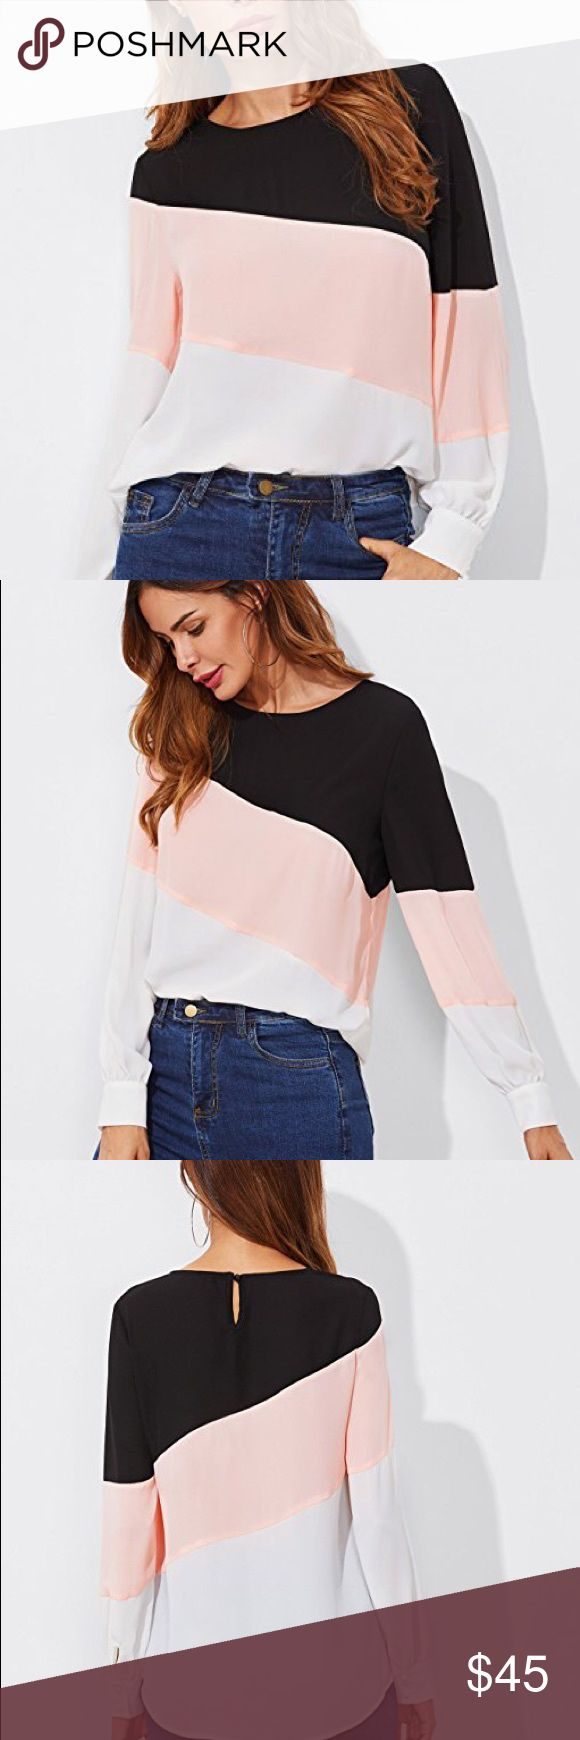 Pink, black, and white color block blouse Brand new w tags boutiquepink, Black, and white colorblock blouse tunic top. 100% polyester. Available sizes are: xsmall, small, medium, or large.  POSH RULES ONLY NO TRADES NO PP NO LOWBALL OFFERS  HAPPY POSHING! boutique Tops Blouses